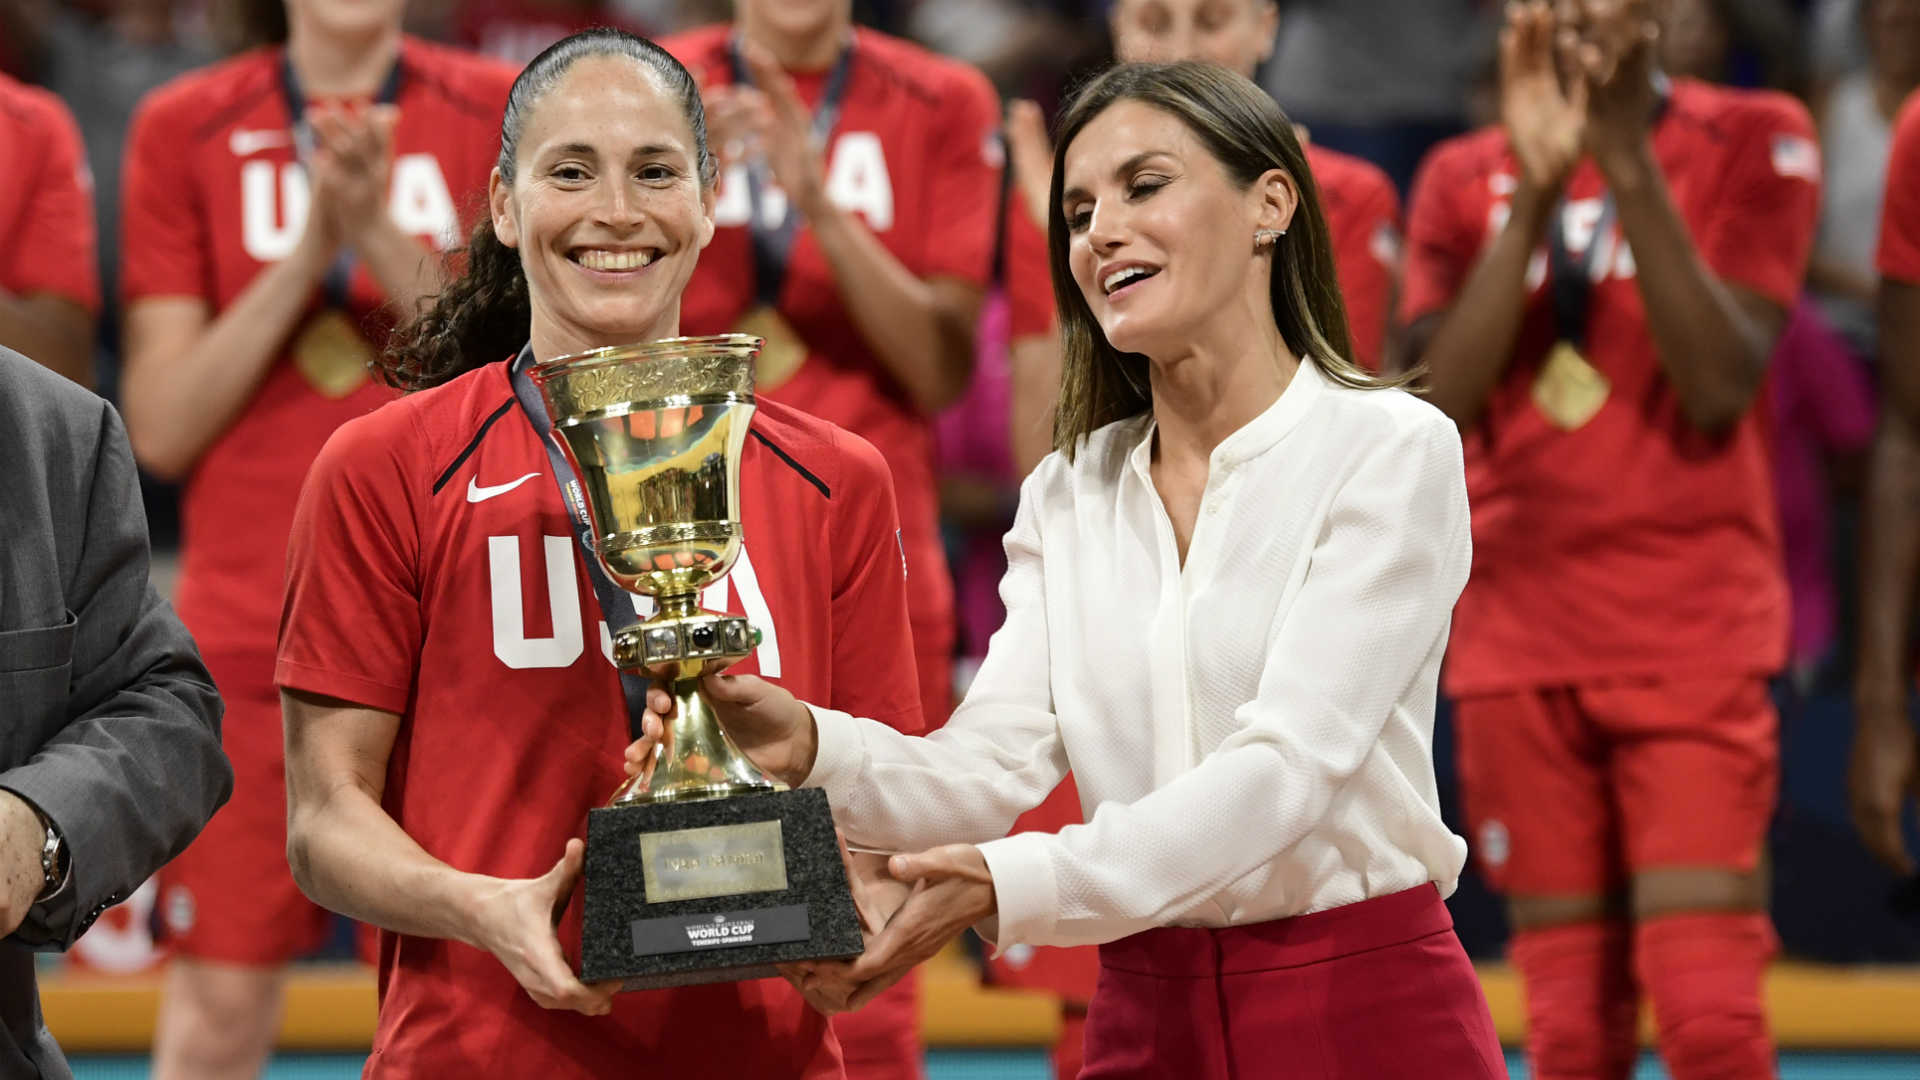 Breanna Stewart named 2018 USA Basketball Female Athlete of the Year